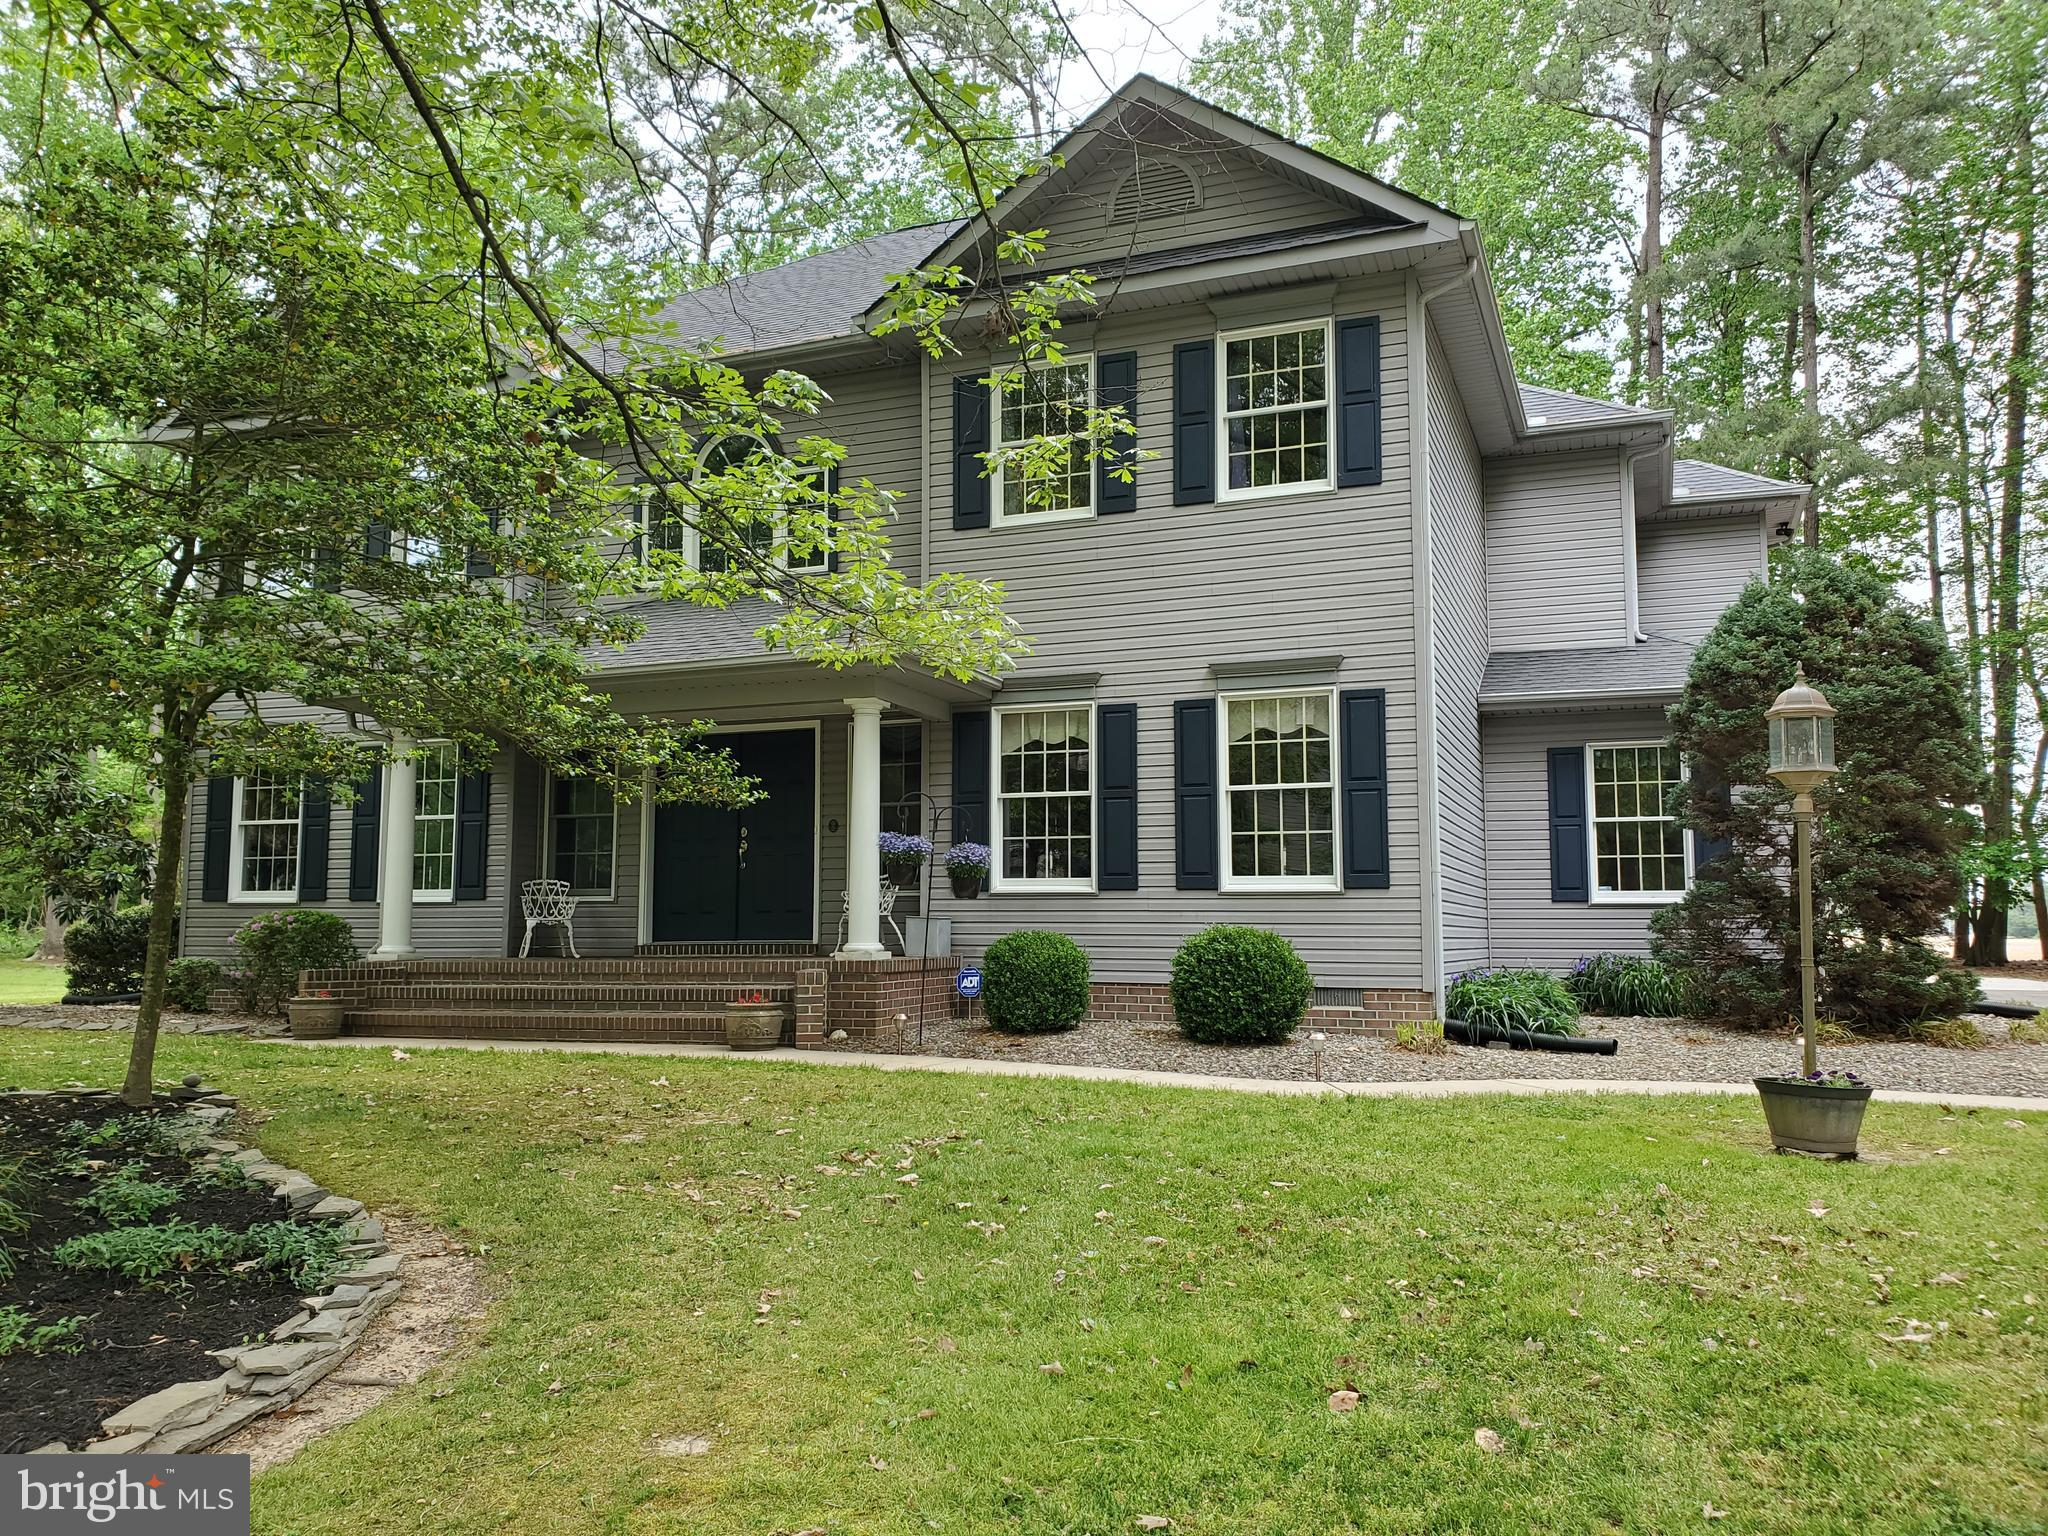 This large beautiful Georgian/Colonial home is ready for a new owner.  If you are a traditional person and love real hard wood flooring and need formal living and formal dining than this home is what you have been waiting for.  This home boast real hard wood flooring on the entire first floor, up the steps and in the hall way upstairs.  The kitchen has stainless appliances, pantry cabinet and pantry closets, wall oven, beautiful views from the windows and eating bar for 5 with a space for a kitchen table and is open to the 20 x 17 family room that opens to the patio.  The primary bedroom is your own personal retreat: from the private sitting room, walk in closet, sliding doors that open to the 2nd floor balcony and the master bath with walk in shower, jetted soaking tub, double sink, and water closet.  That is a fine way to end your busy day.  The other bedrooms are large in size and offer more that just a place to sleep.  The exterior of this home has trees and landscaping.  The 3 car garage is oversized with plenty of storage areas.  The patio out back has a hot tub and decorative fencing.  There is even a Golfer green for practicing your swing.  This home has everything for the person that is retired and needs some at home activities, to the had working person that needs to unwind after their long day.  The charm of this home is very inviting and warm feeling.   Call today to see this home!